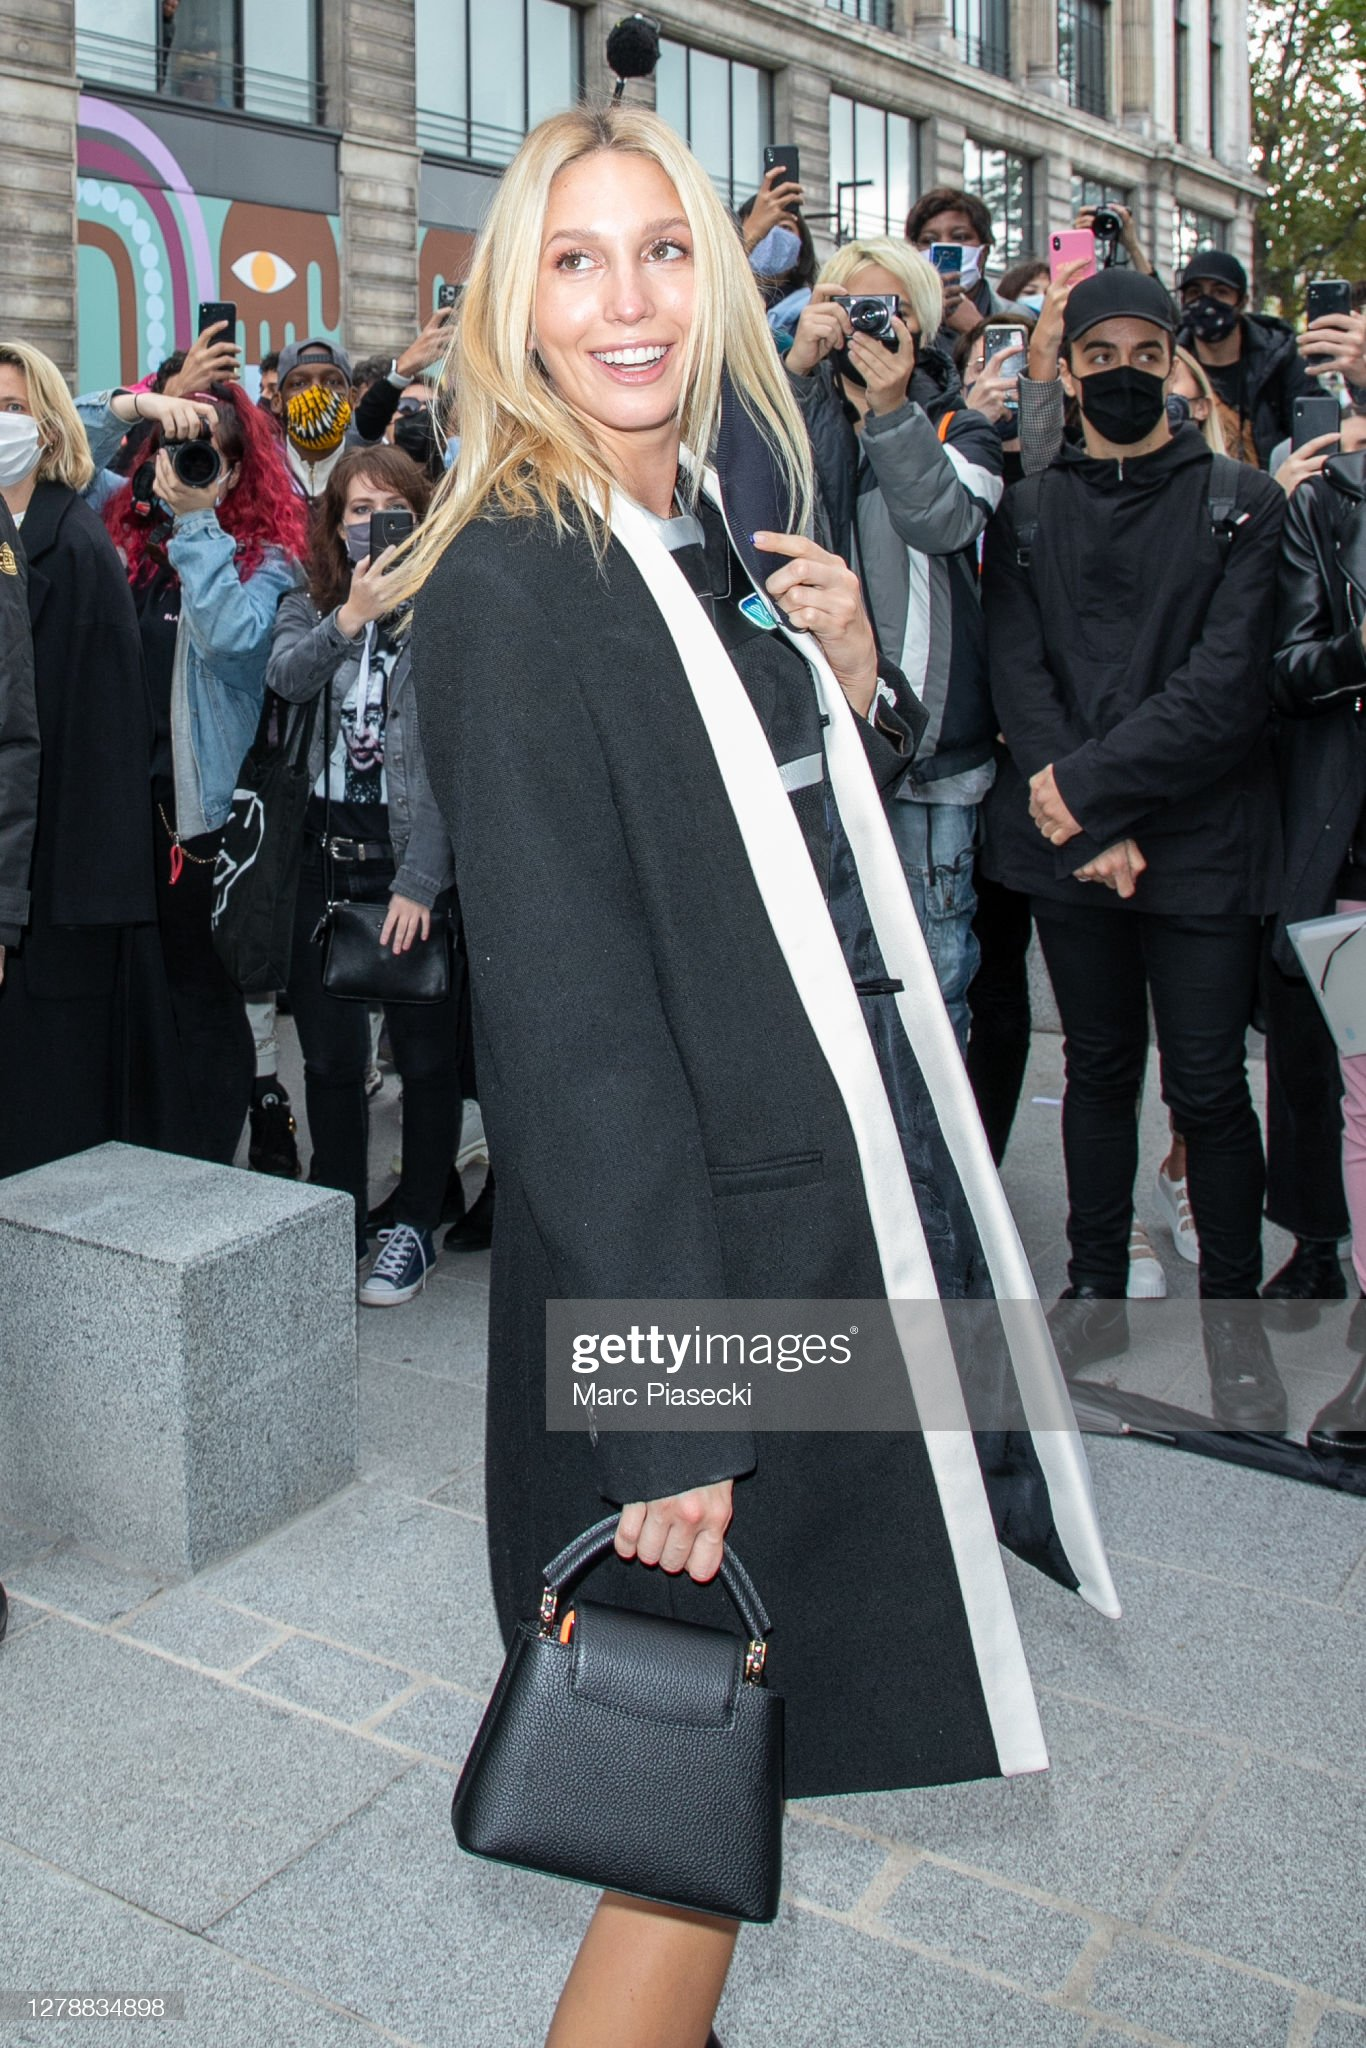 https://media.gettyimages.com/photos/princess-mariaolympia-of-greece-and-denmark-attends-the-louis-vuitton-picture-id1278834898?s=2048x2048